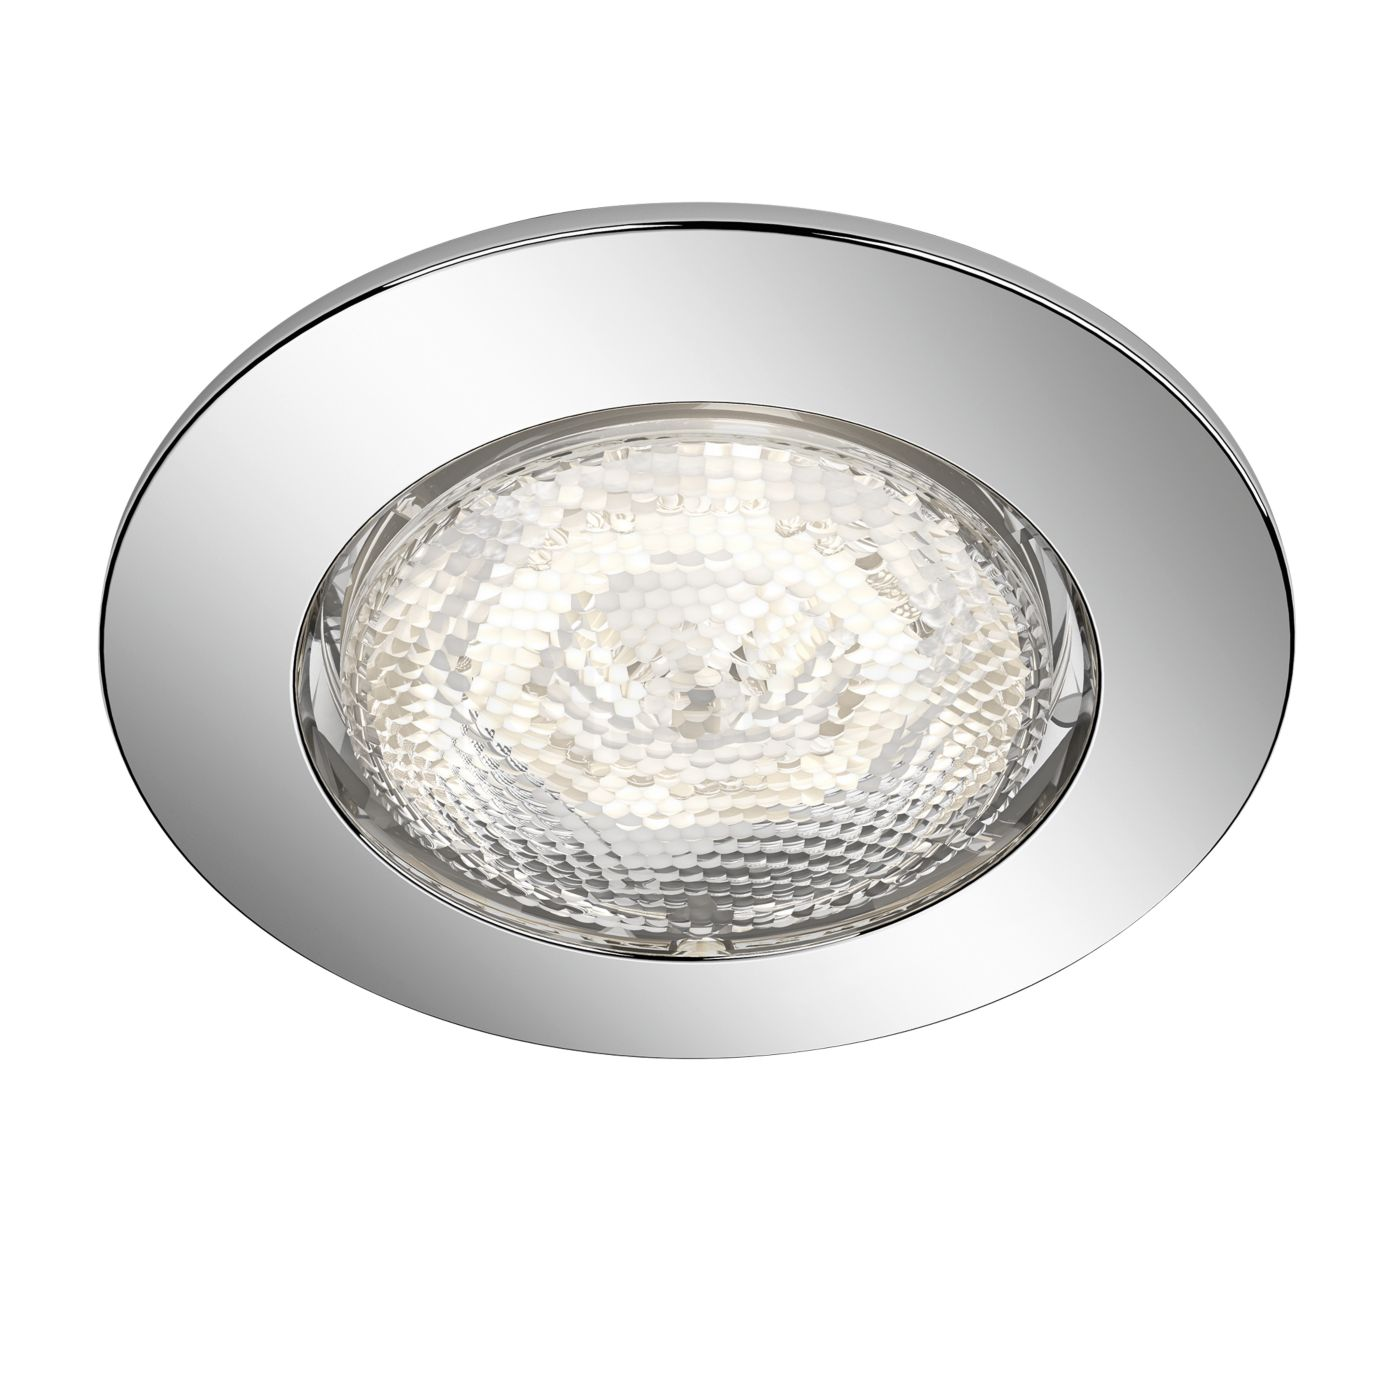 Philips myBathroom Dreaminess Inbouwspot rond LED